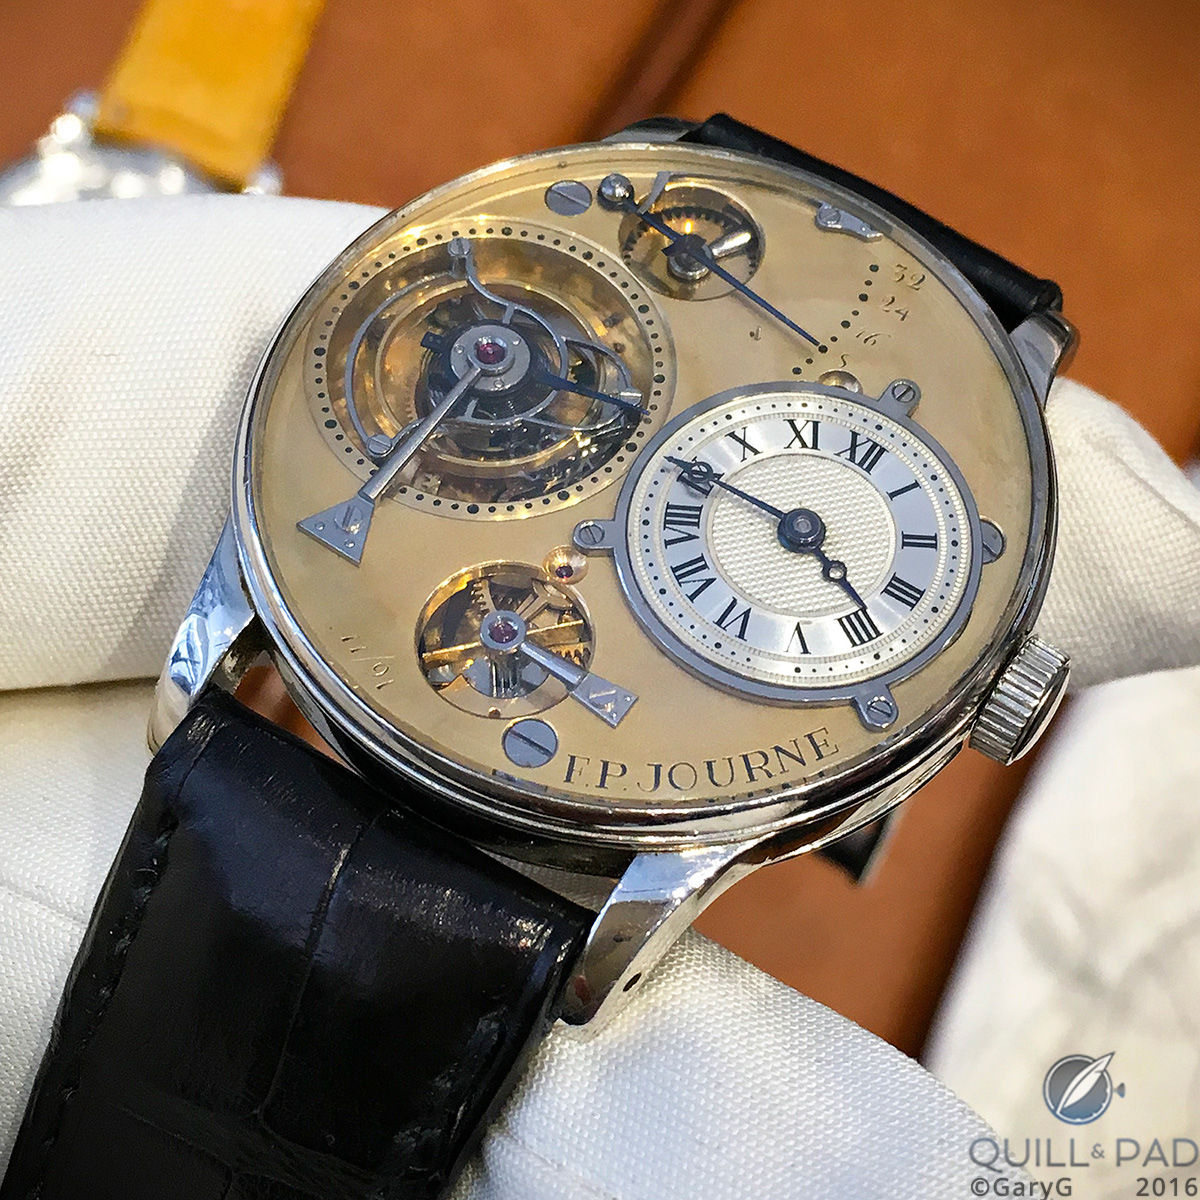 One watch replica to rule them all? The F.P. Journe tourbillon wristwatch prototype of 1991